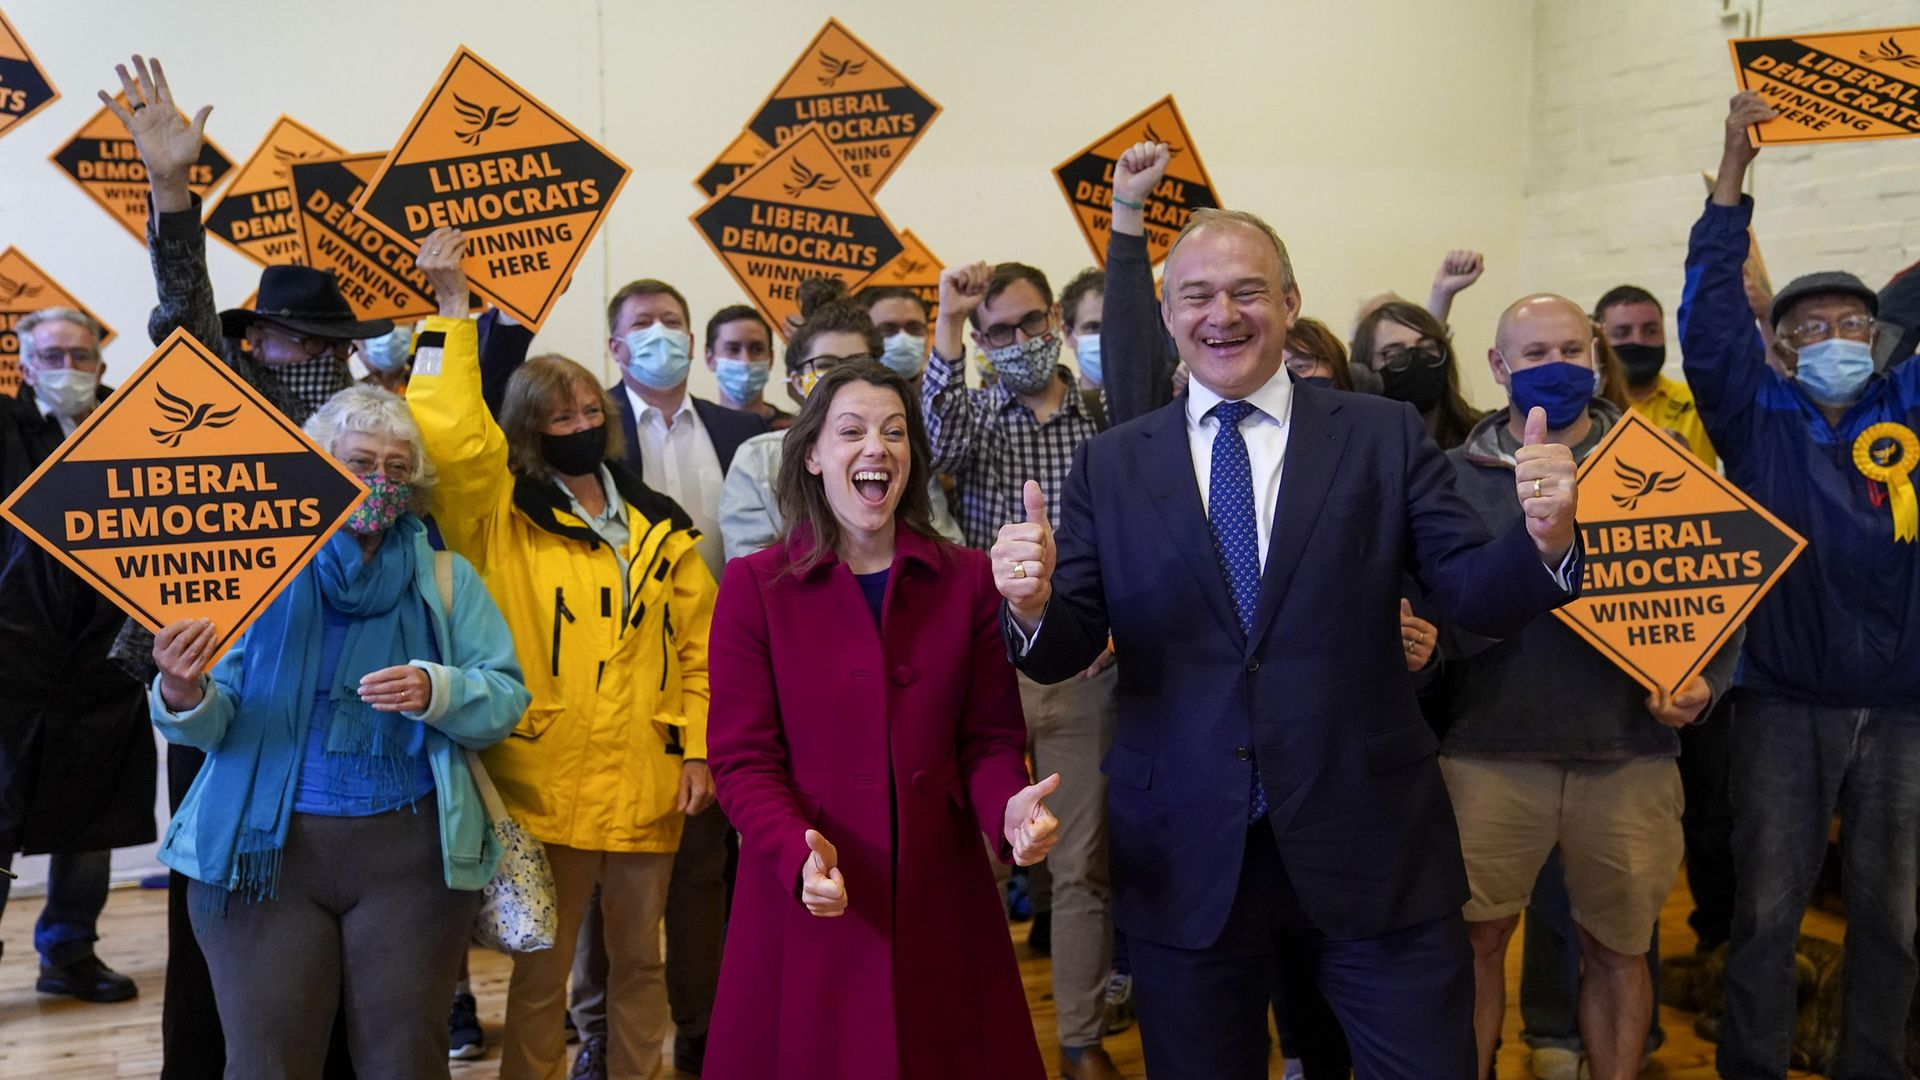 Liberal Democrat leader Ed Davey and new Liberal Democrat MP for Chesham and Amersham, Sarah Green, during a victory rally at Chesham Youth Centre - Credit: PA